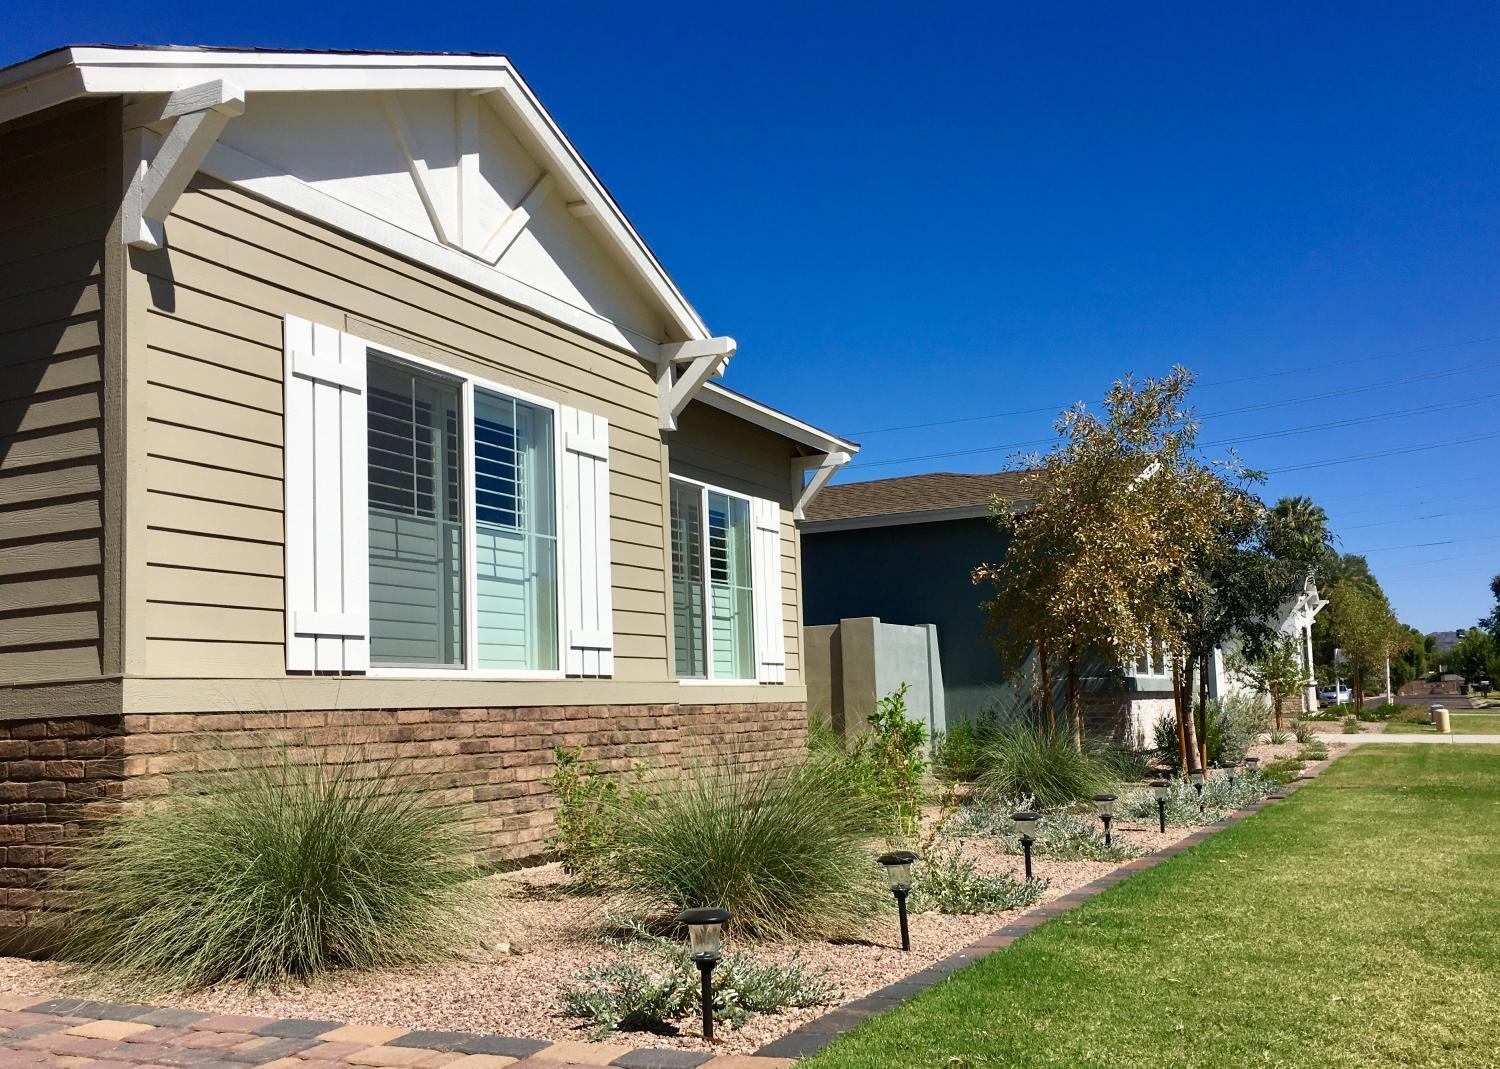 New infill houses in Phoenix